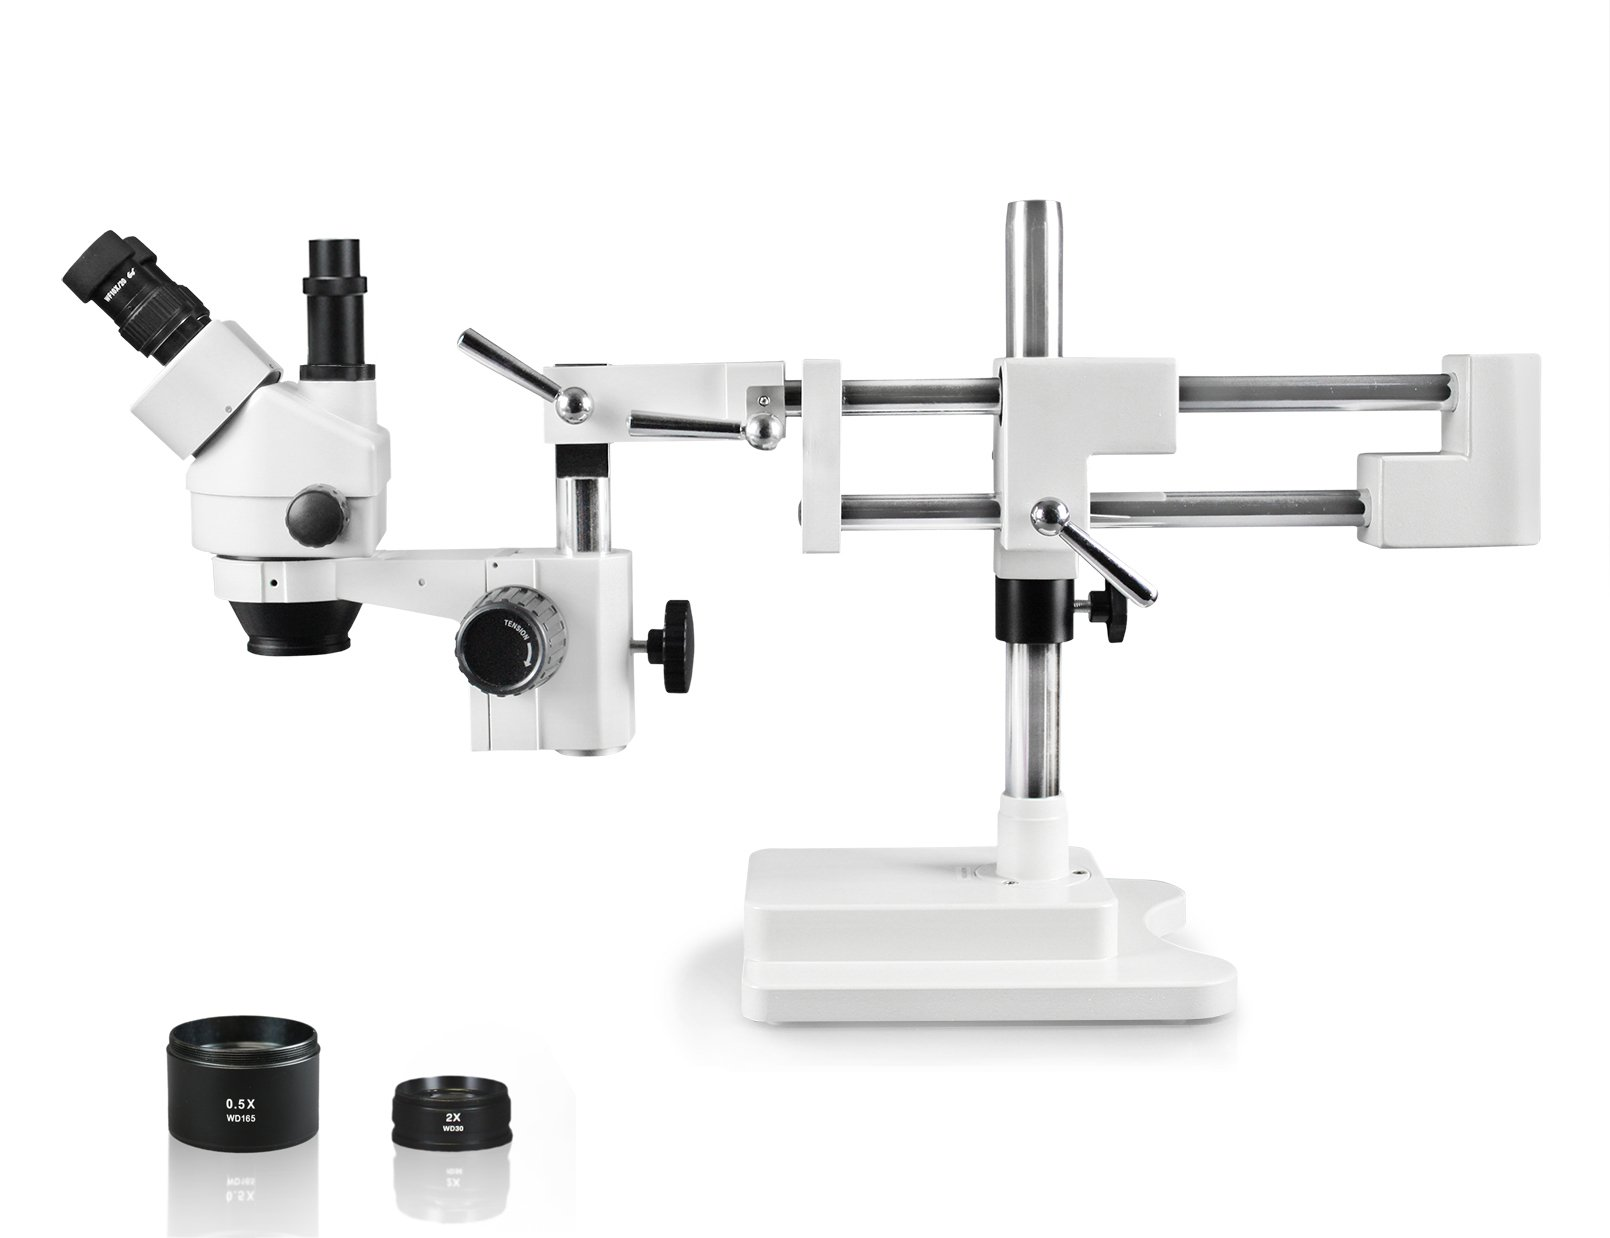 Parco Scientific PA-5FZ Simul-Focal Trinocular Zoom Stereo Microscope, 10x WF Eyepiece, 0.7X-4.5X Zoom, 3.5X-90x Magnification, 0.5X & 2X Auxiliary Lens, Double Arm Boom Stand by Parco Scientific